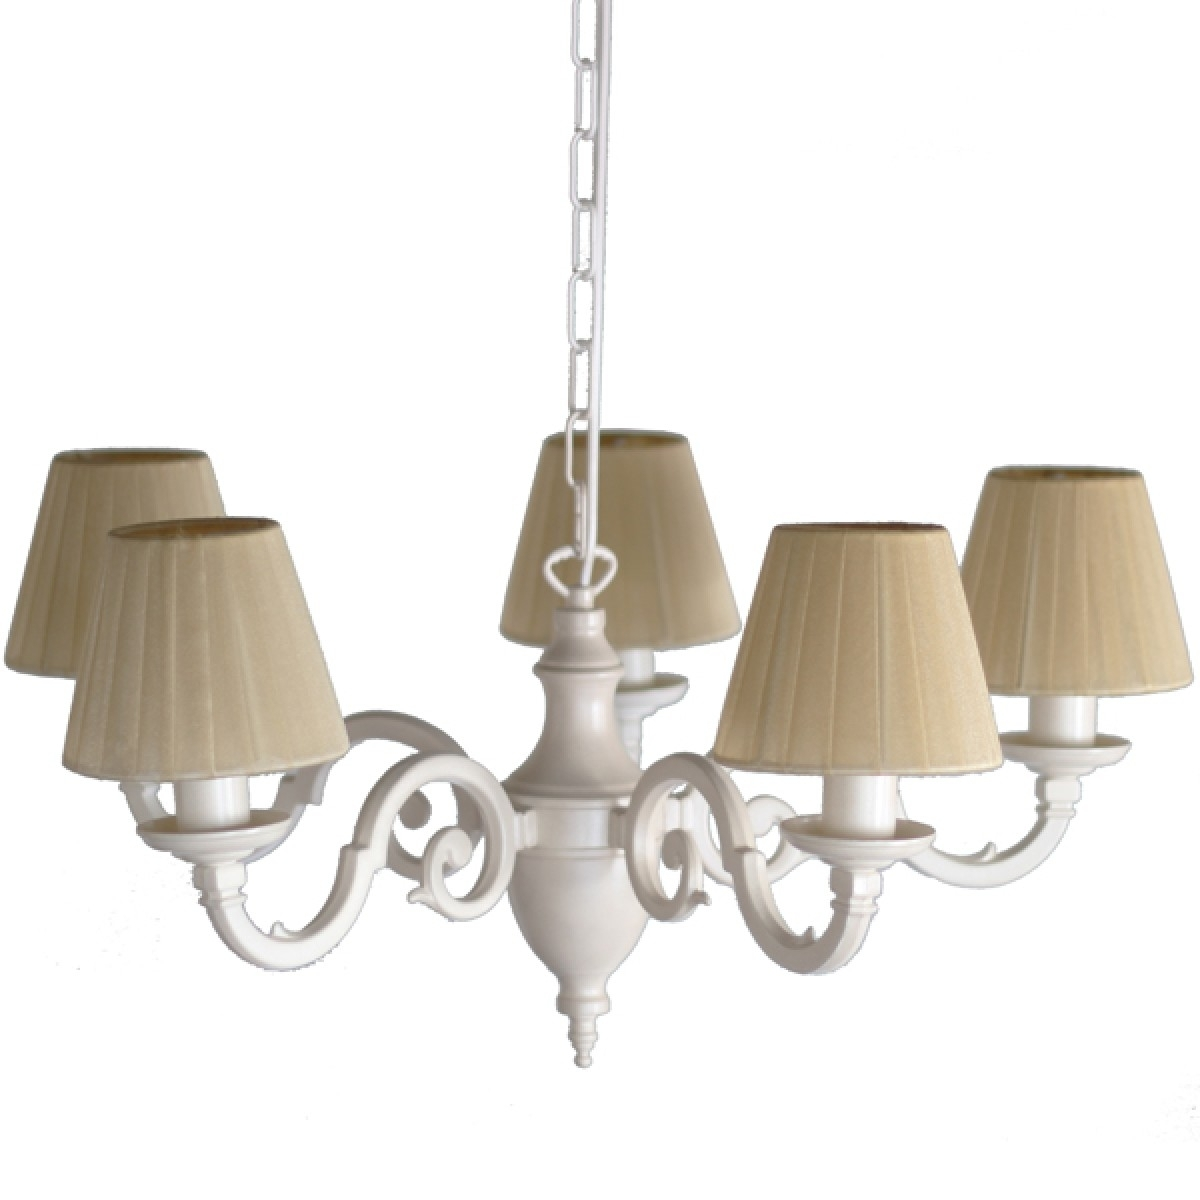 Cream Chandeliers Pertaining To Most Recent Bedroom Light Fitting Chandelier (View 5 of 20)